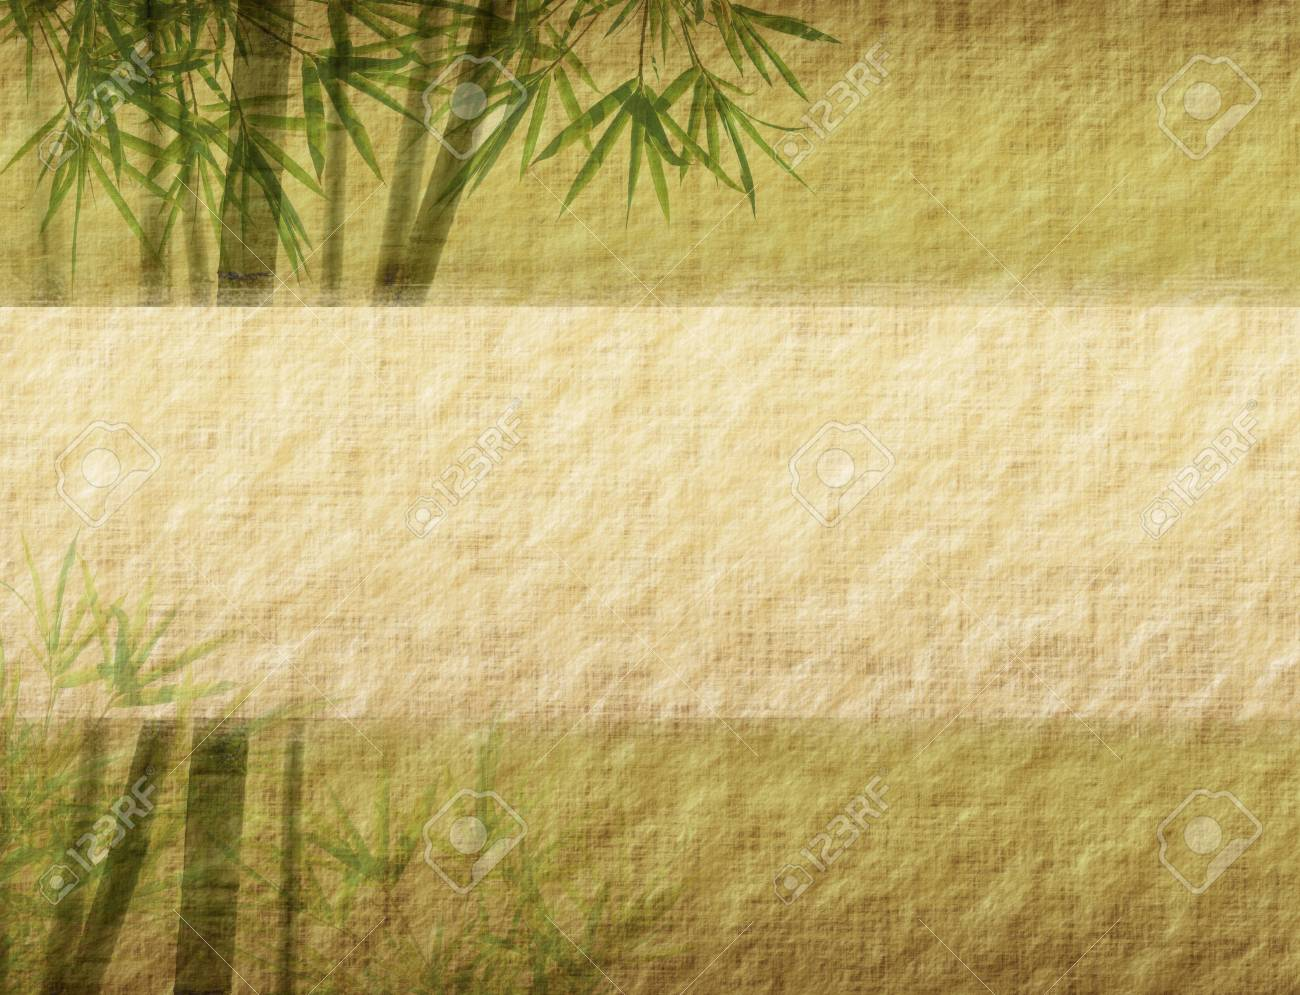 bamboo on old grunge paper texture background Stock Photo - 14183574